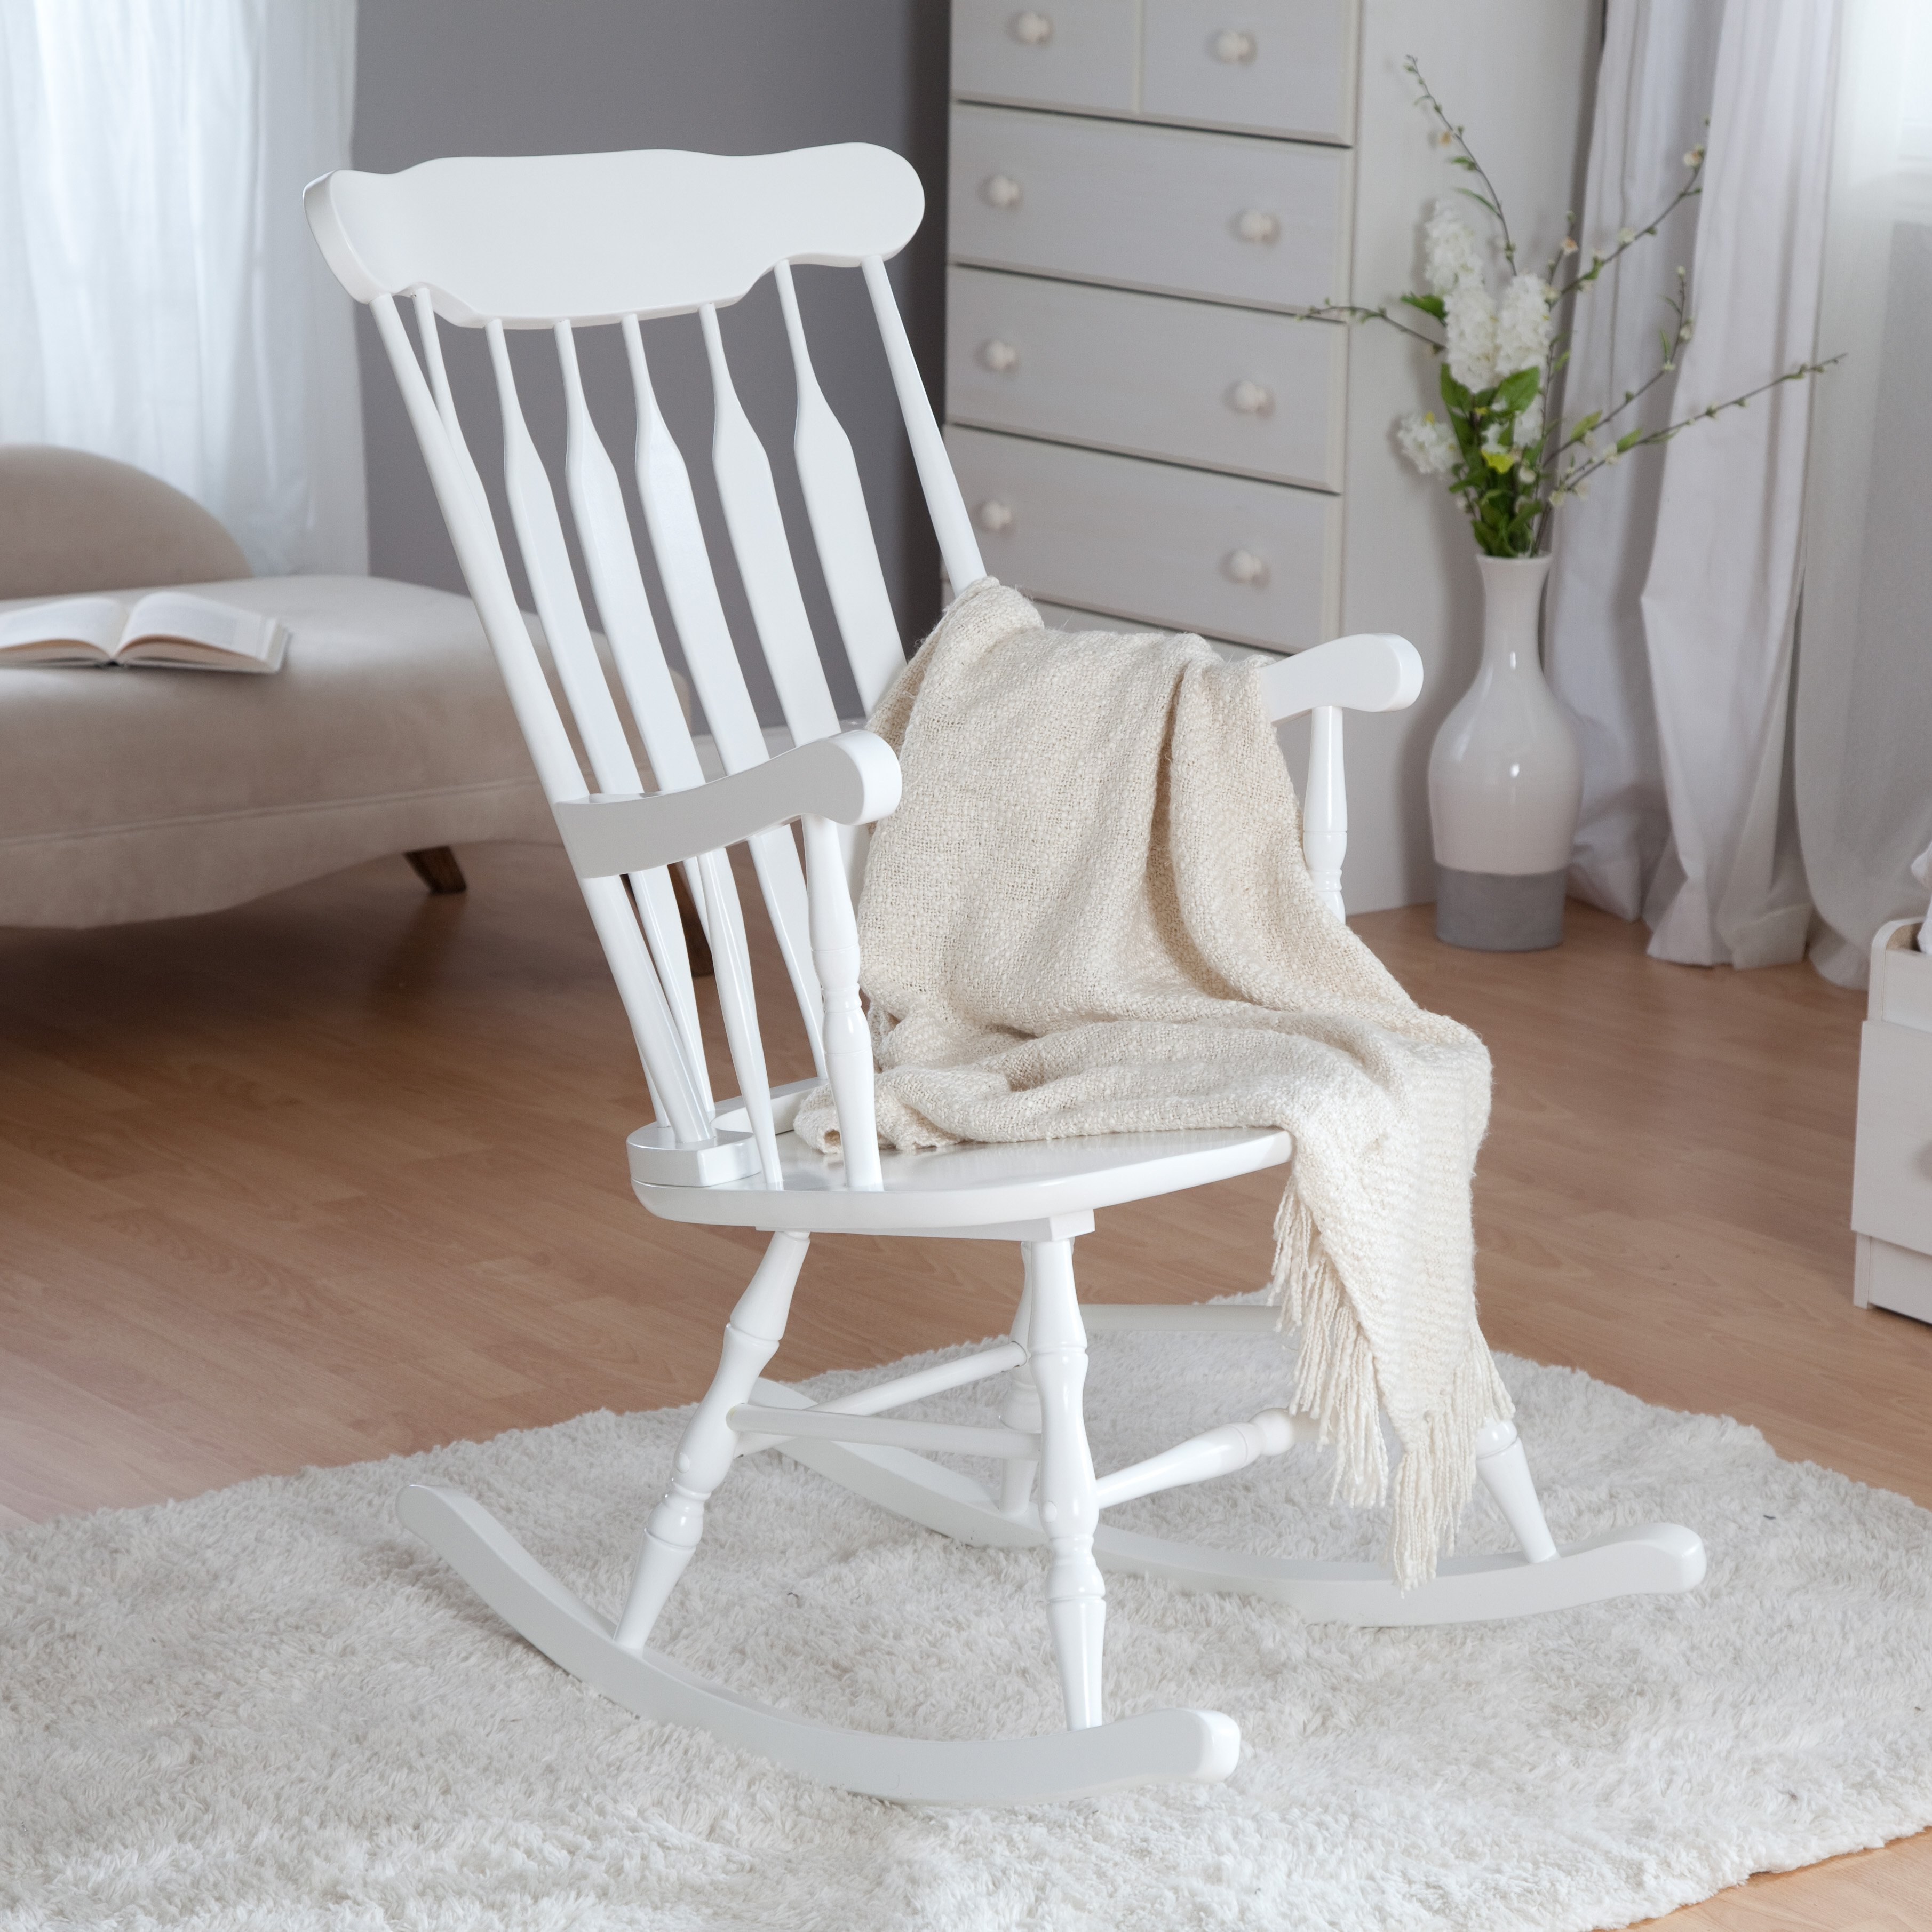 rocking chair for babys room master:kd